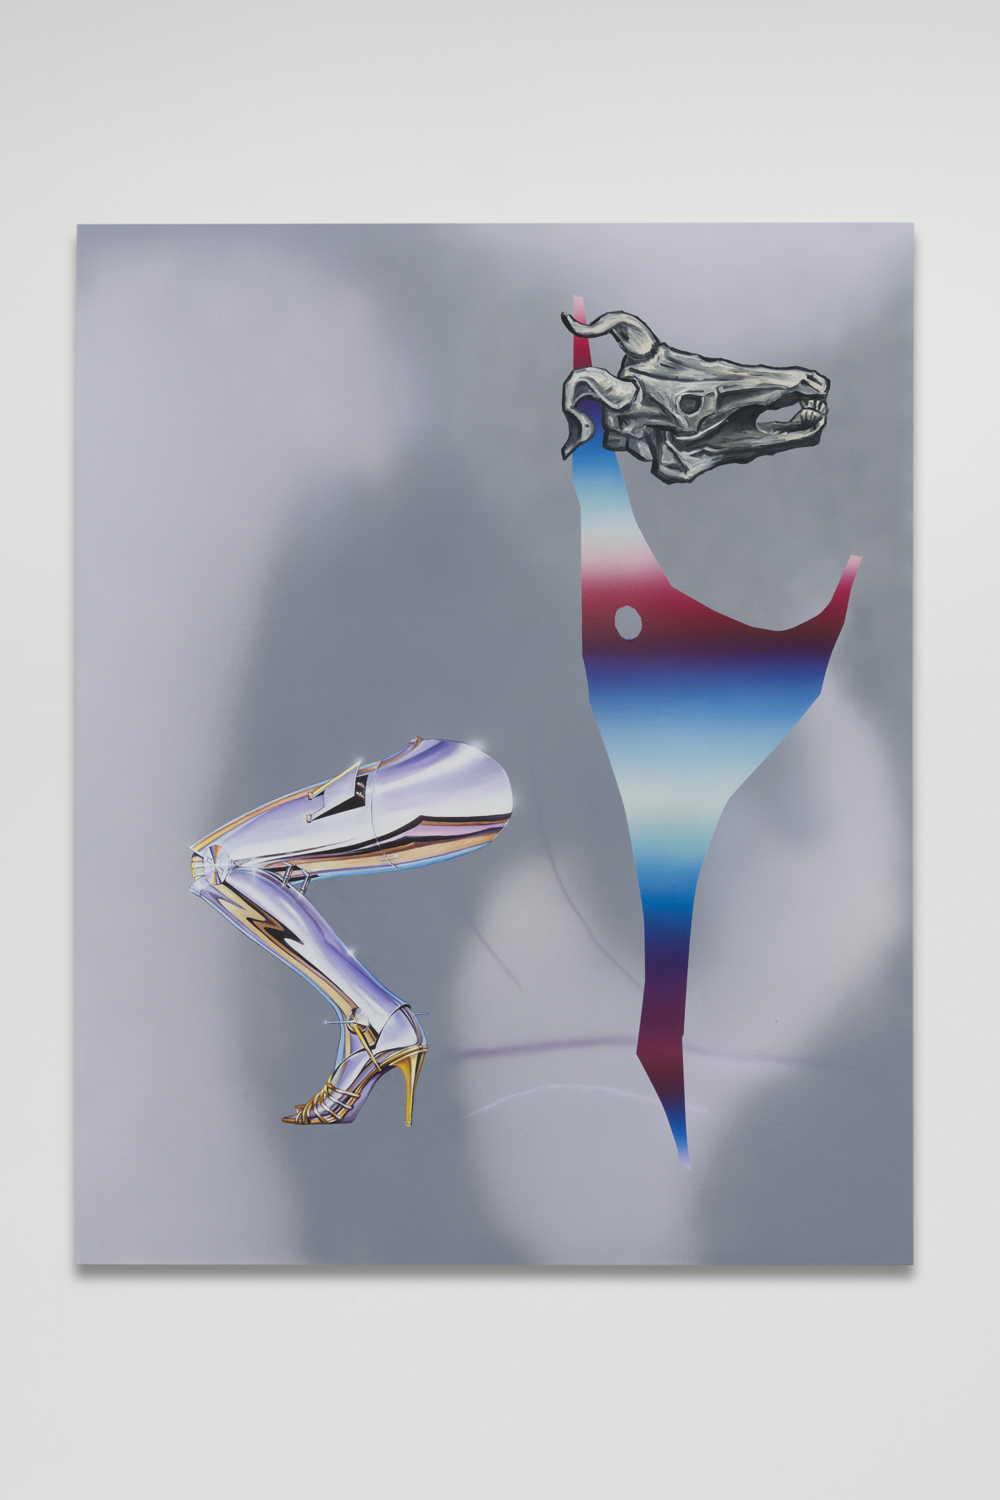 Dani Tull, Uncanny Valley (leg 1, Sorayama) Oil and acrylic on canvas 60 x 48 inches